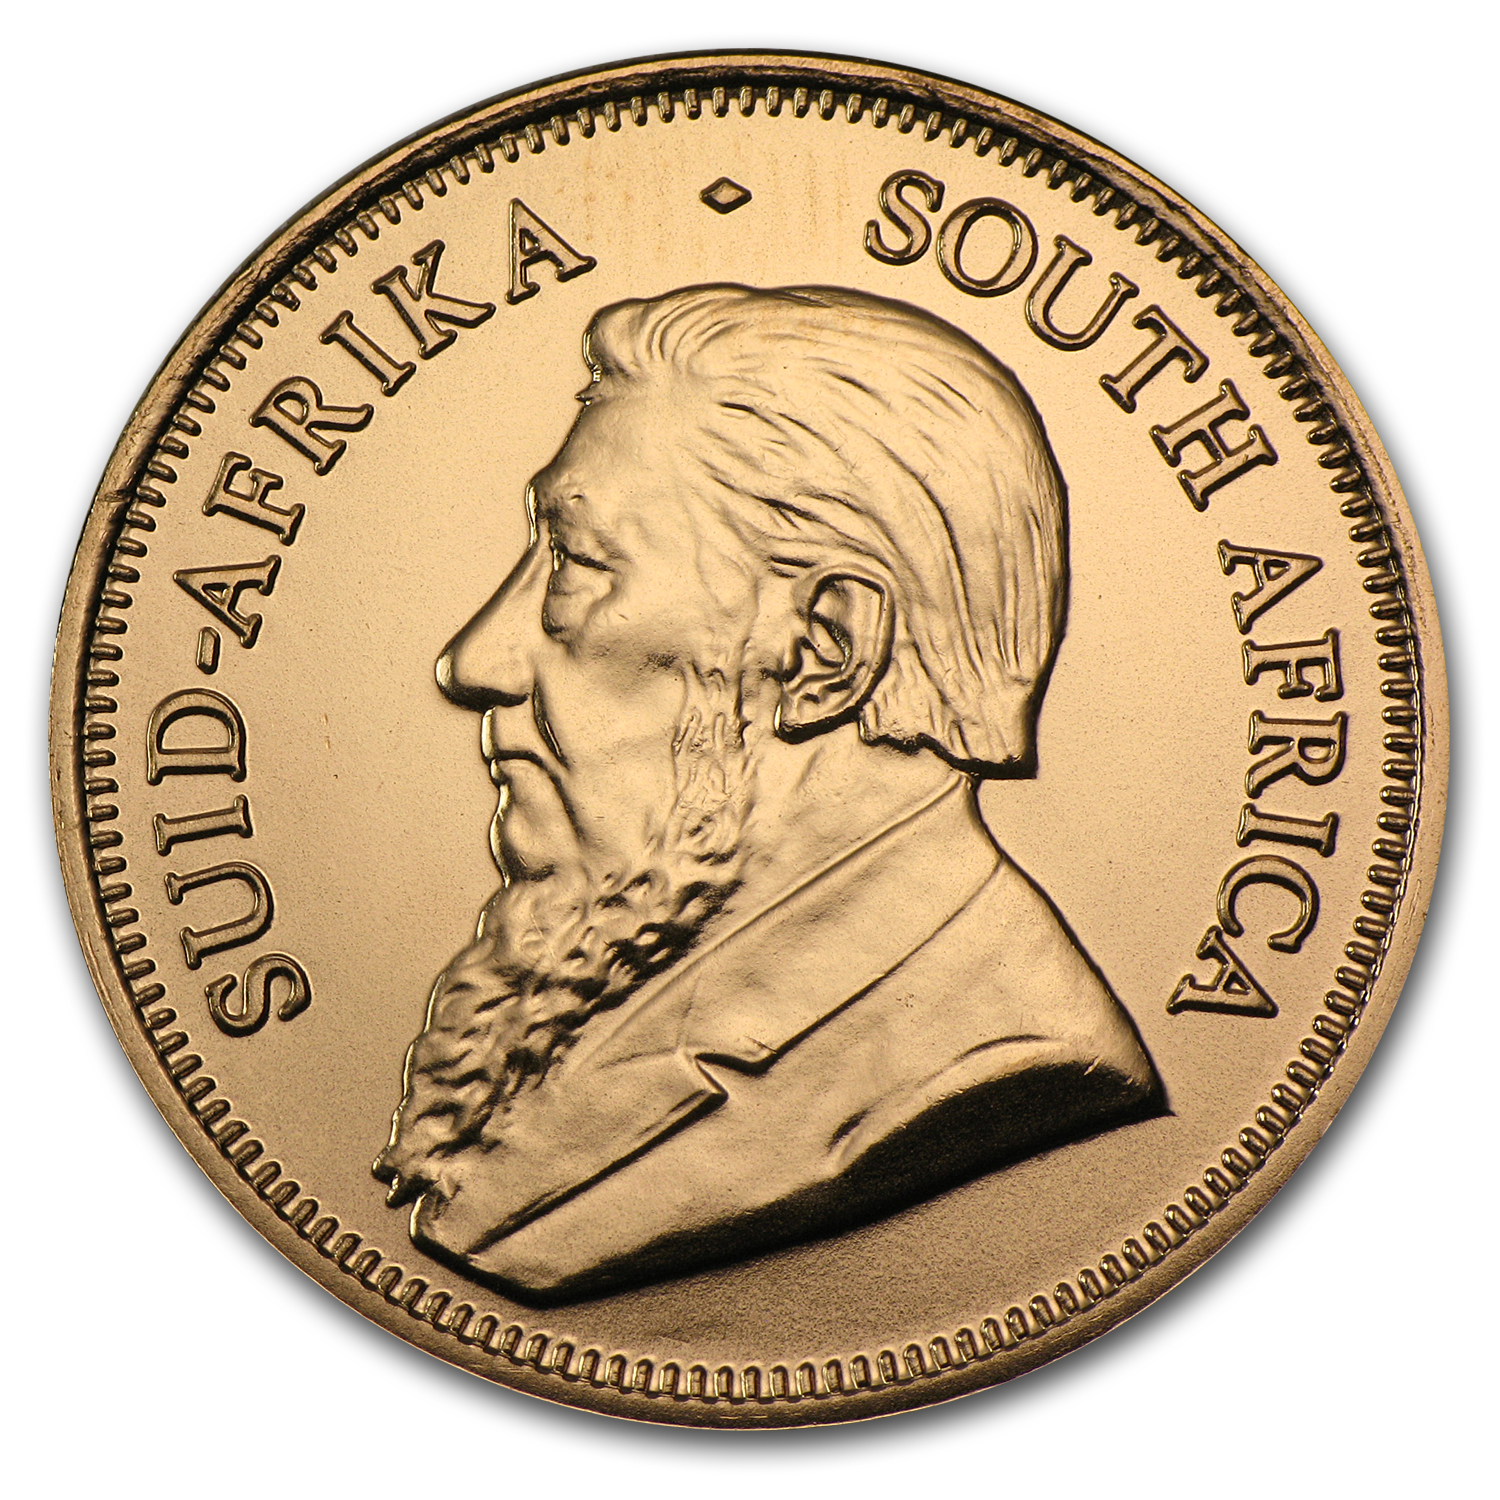 2012 South Africa 1/2 oz Gold Krugerrand